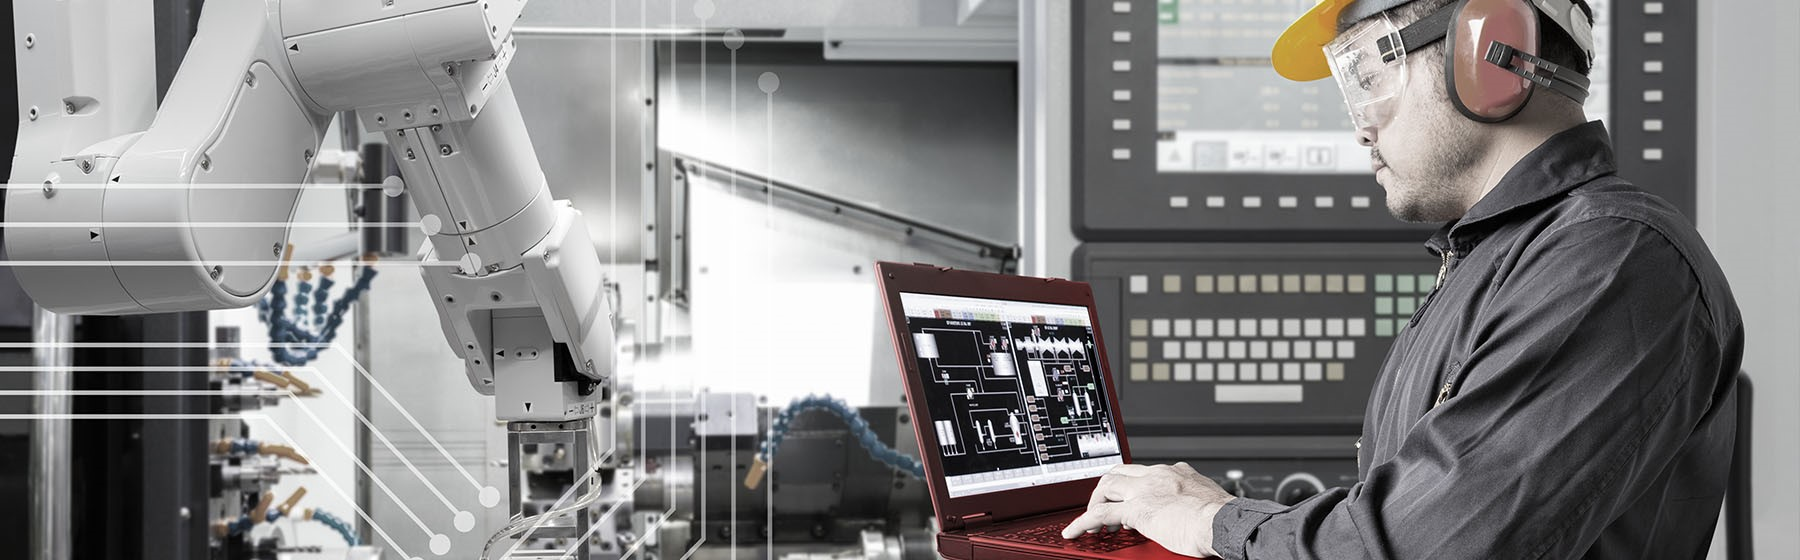 Process Control Automation in Oil & Gas (Downstream)